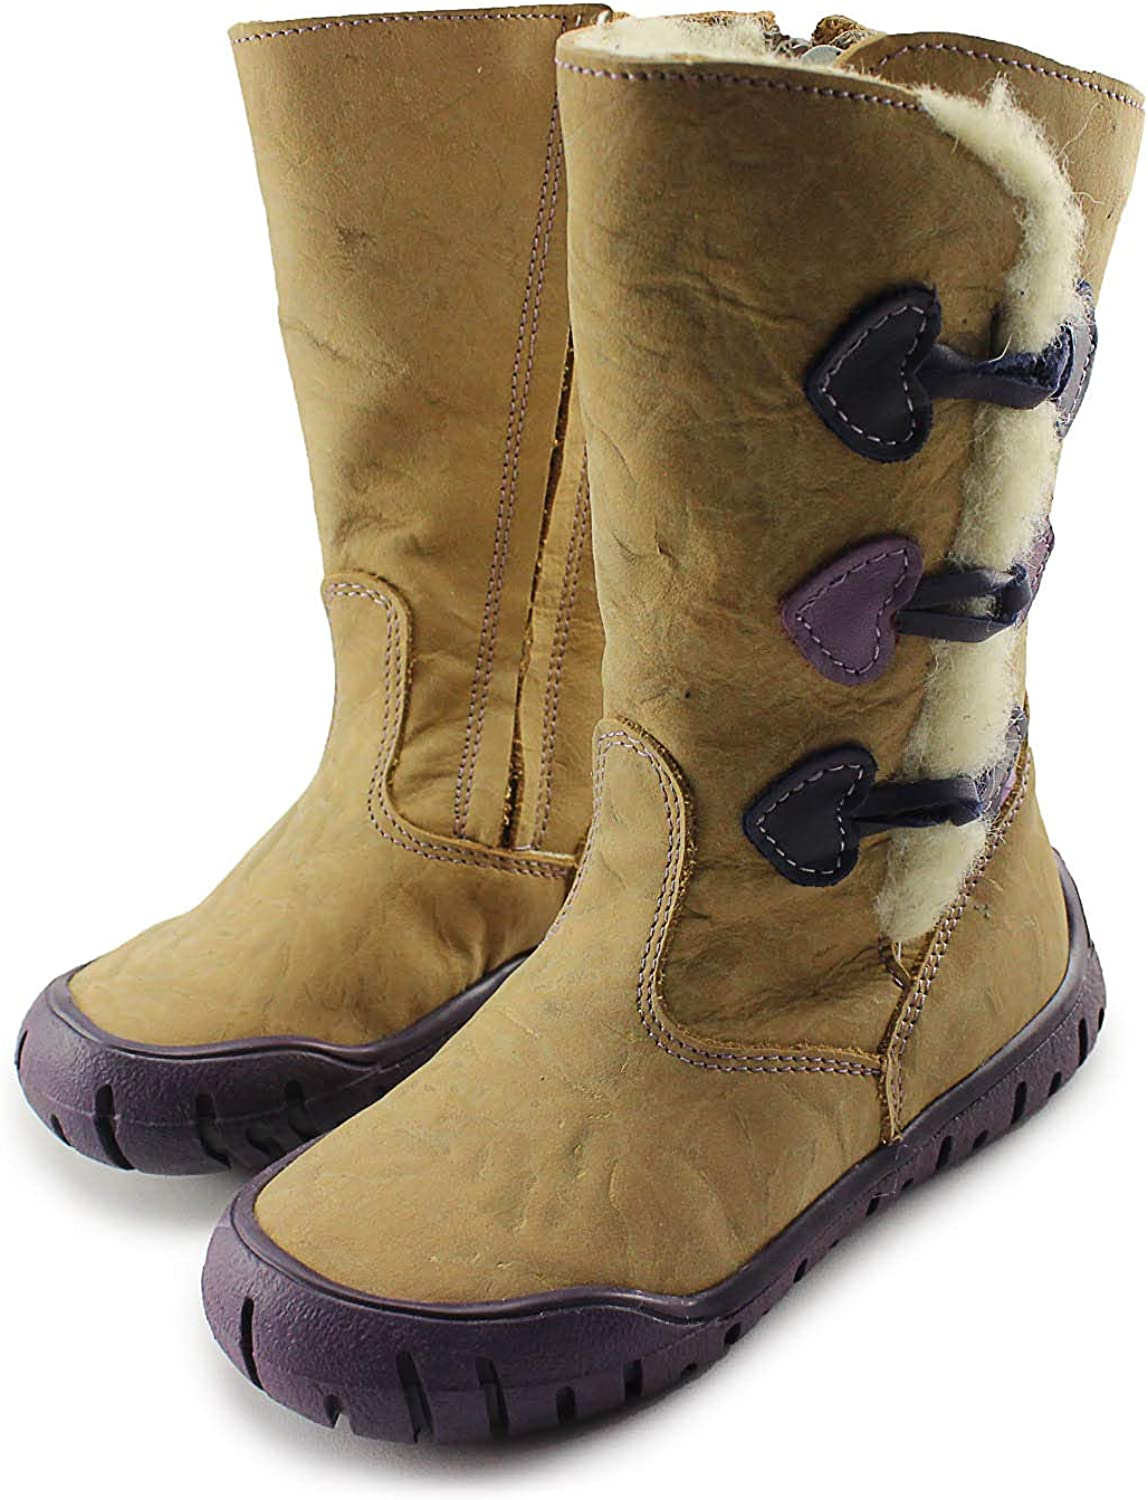 Mazurek Beige Girls Winter Leather Boots Made in Poland CLEARANCE SALE